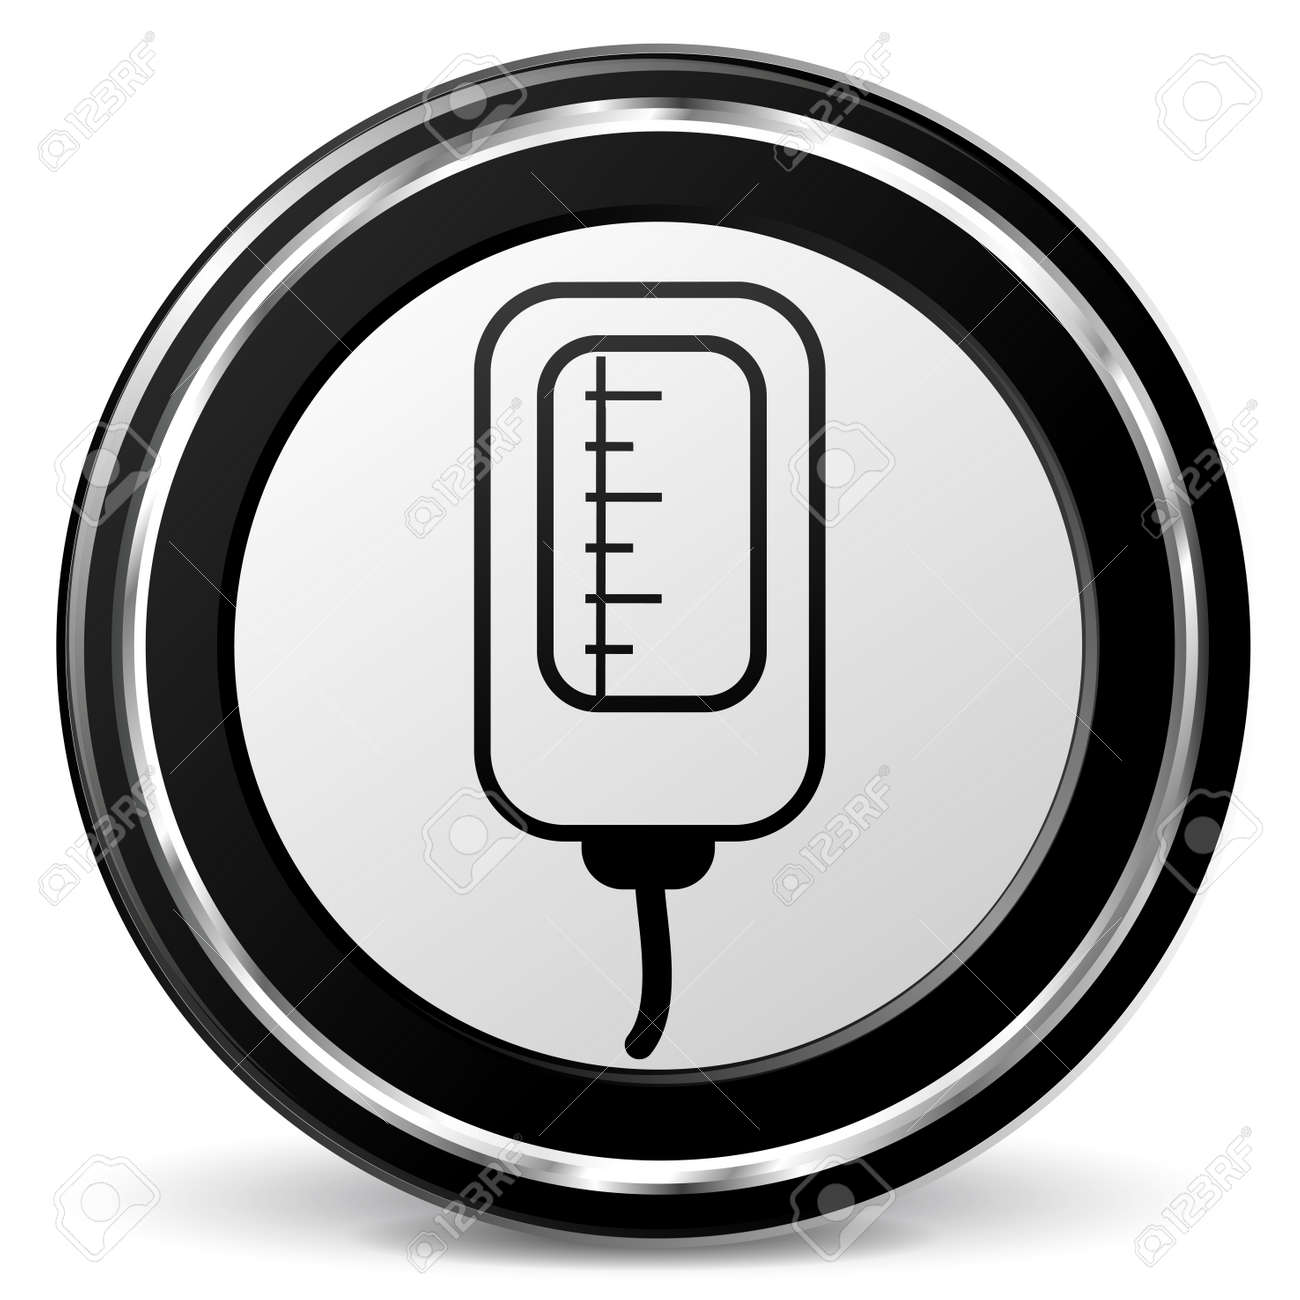 illustration of catheter black and gray icon royalty free cliparts rh 123rf com